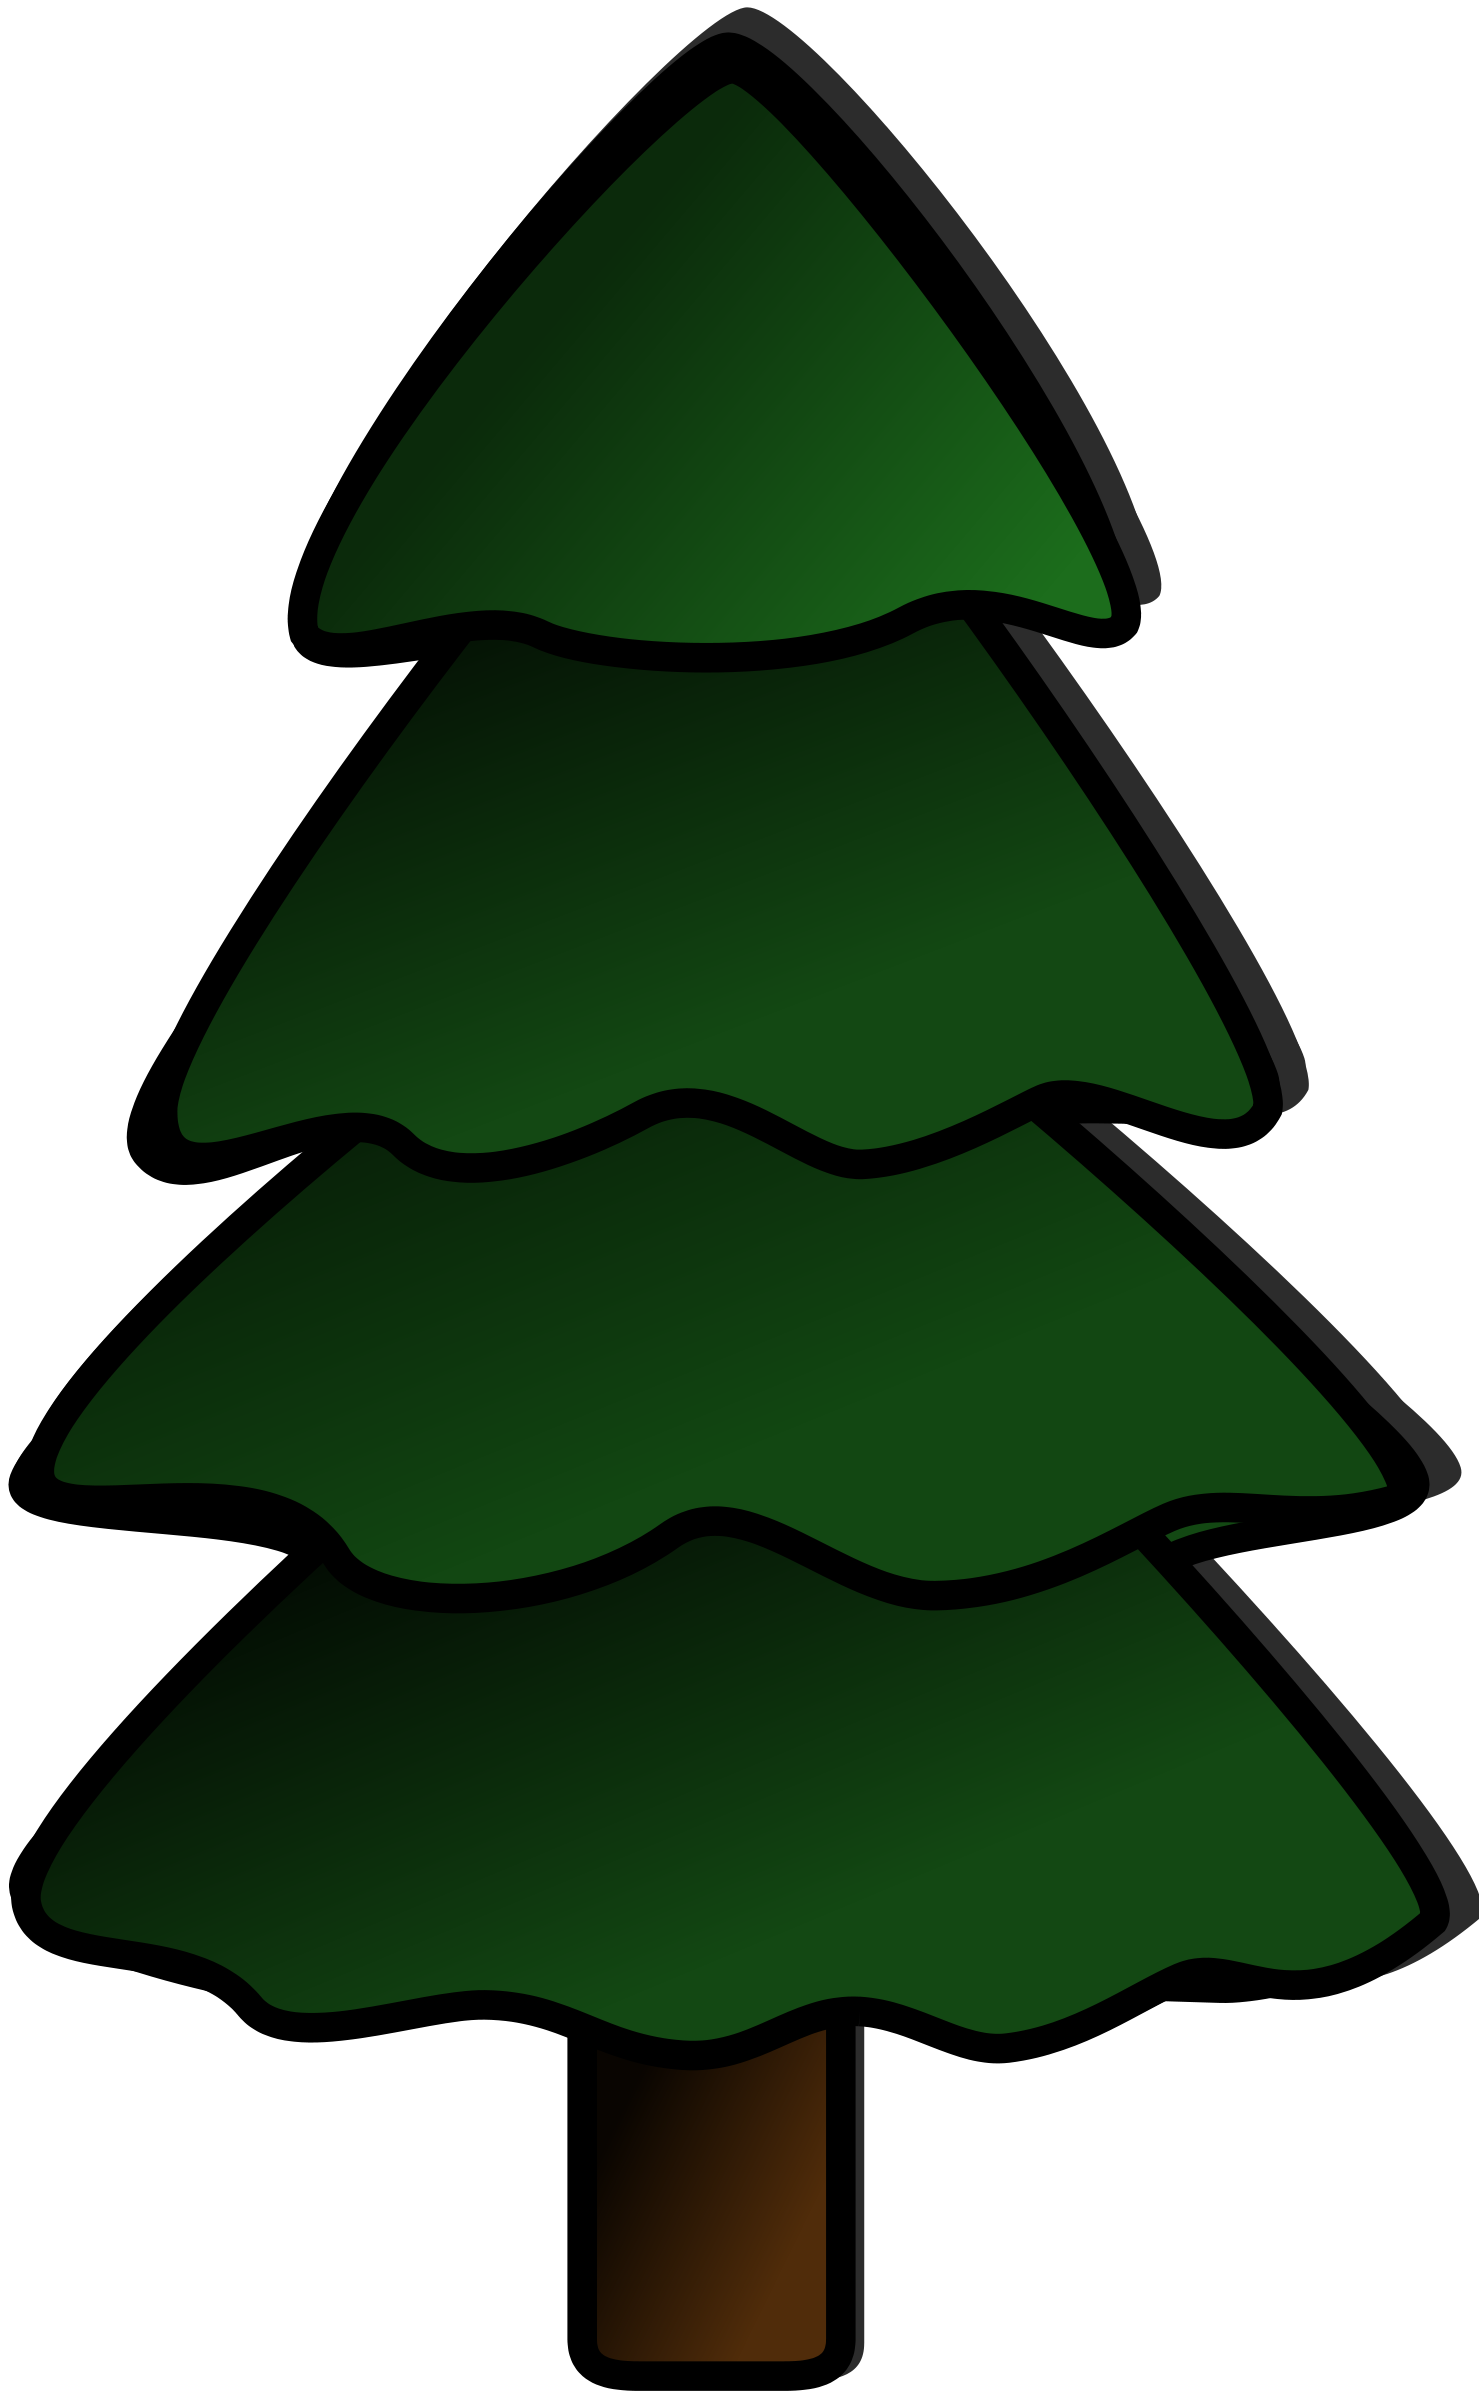 Evergreen silhouette at getdrawings. Pine trees clipart png clip transparent library